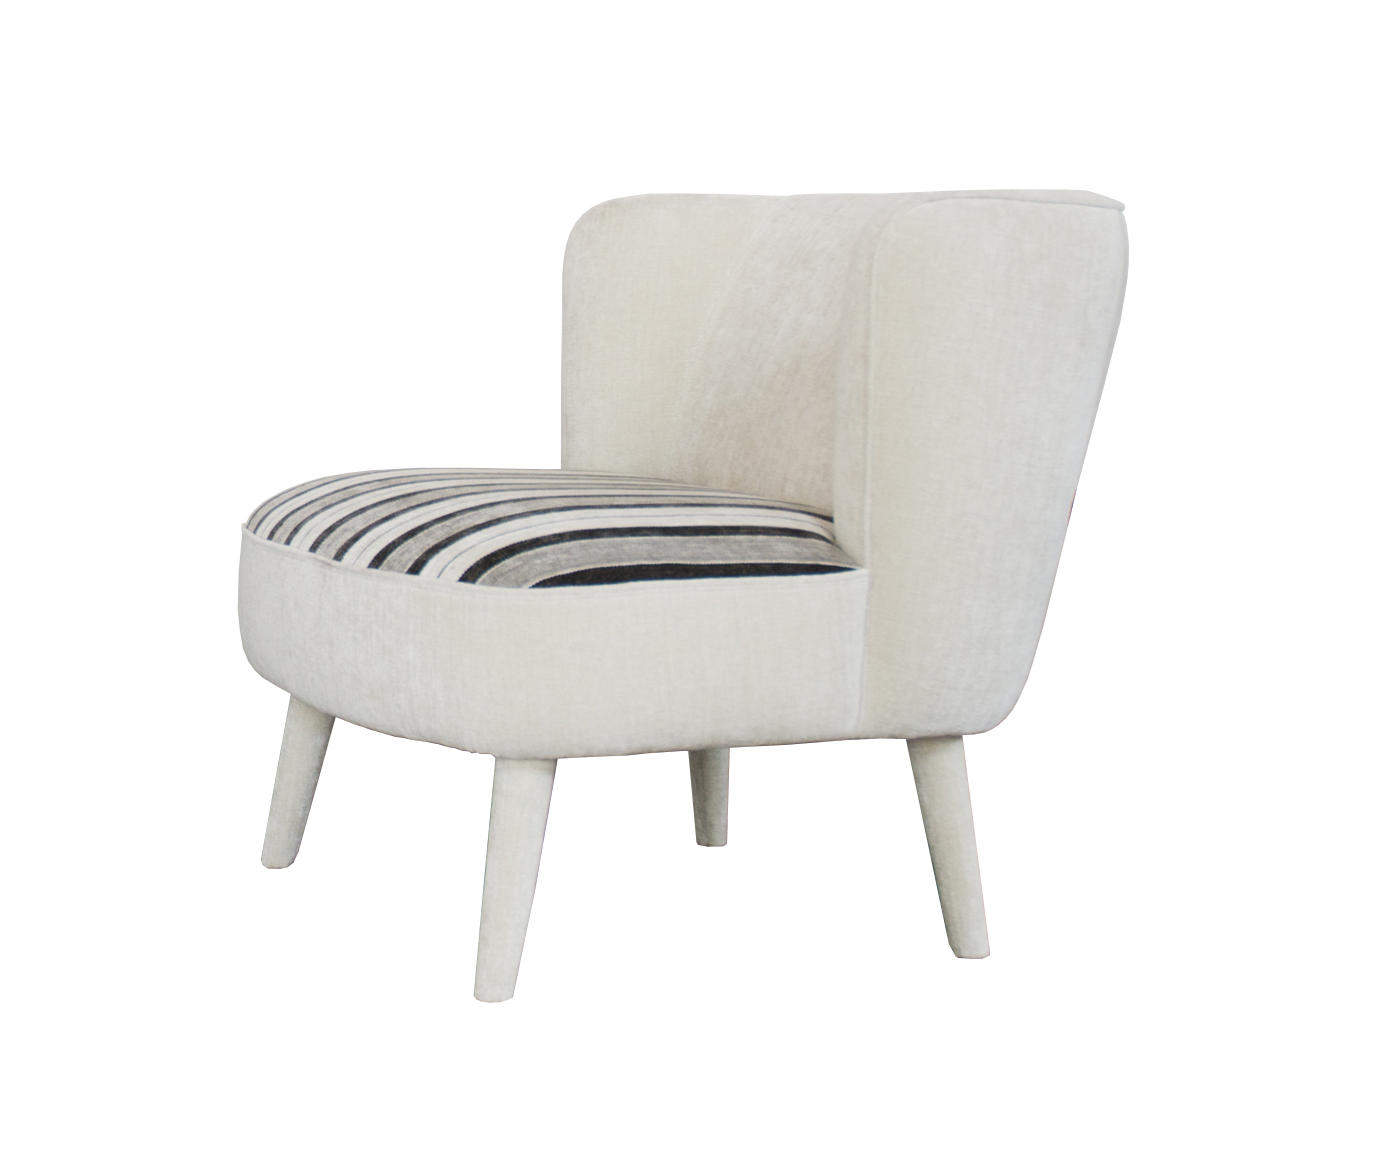 Terrific Camilla Armchair Fabric Architonic Bralicious Painted Fabric Chair Ideas Braliciousco